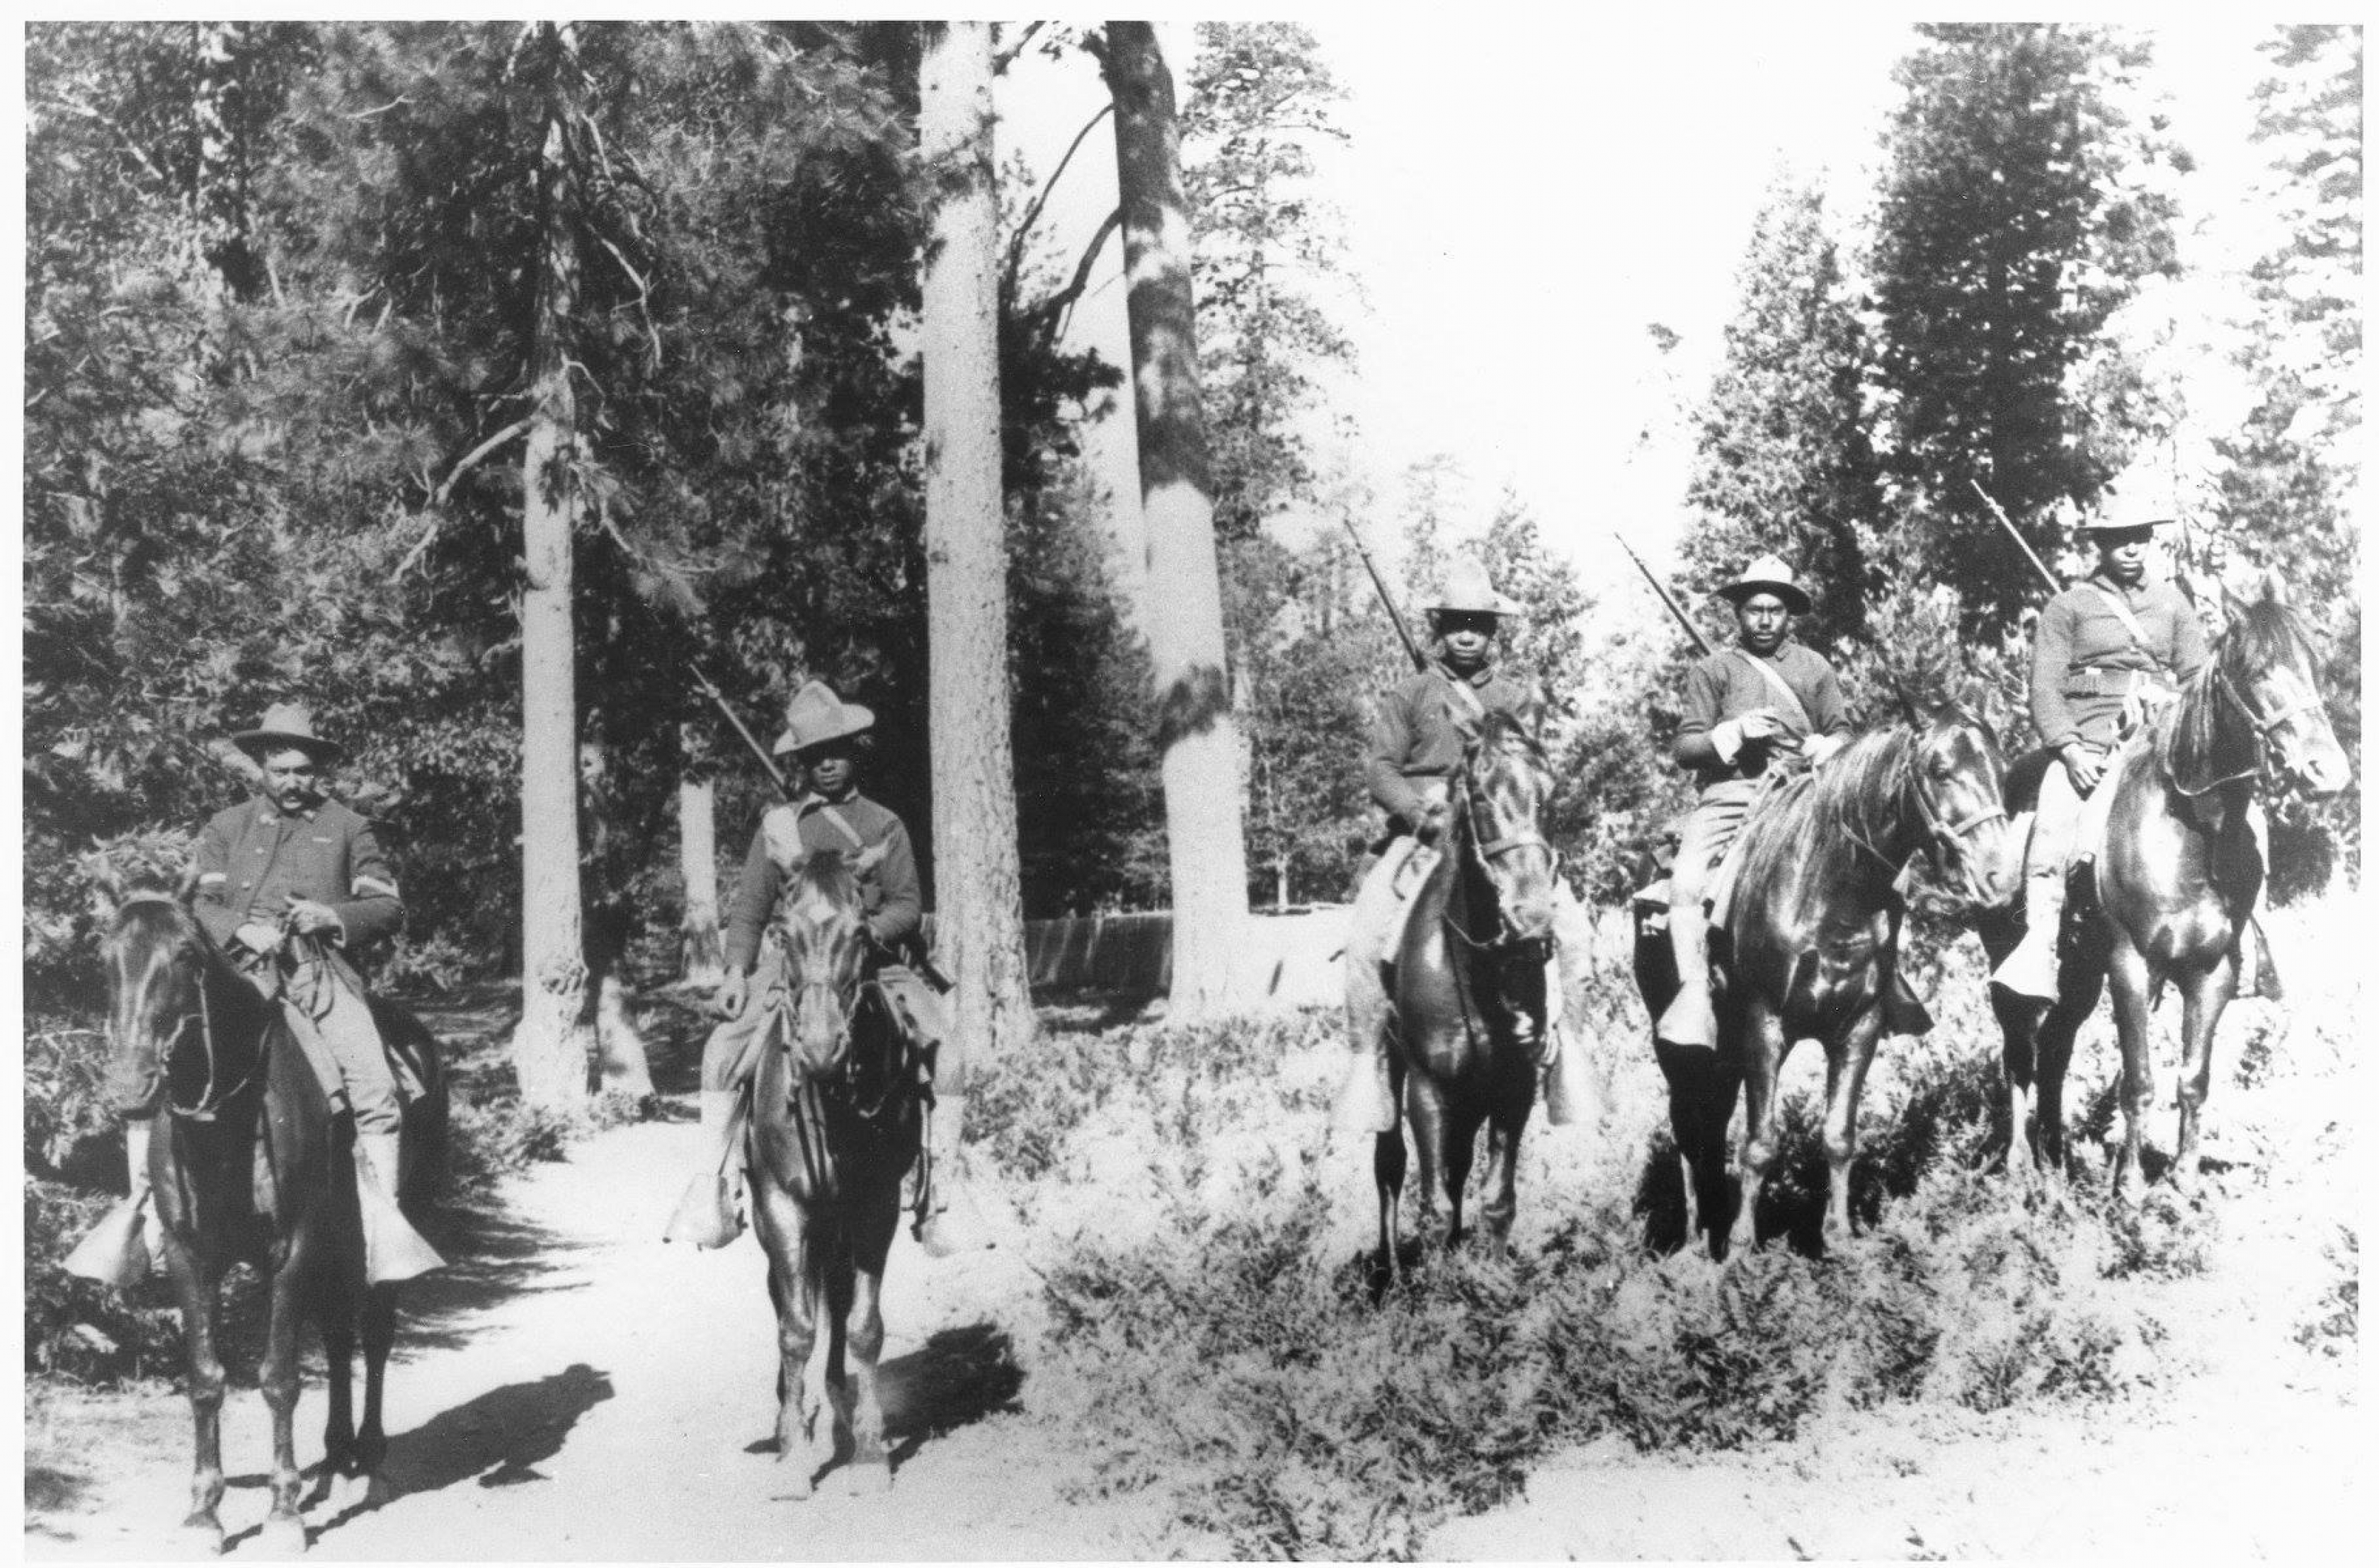 Historic black and white photo of the 24th Infantry Buffalo Soldiers on horseback patrolling in the woods of Yosemite National Park